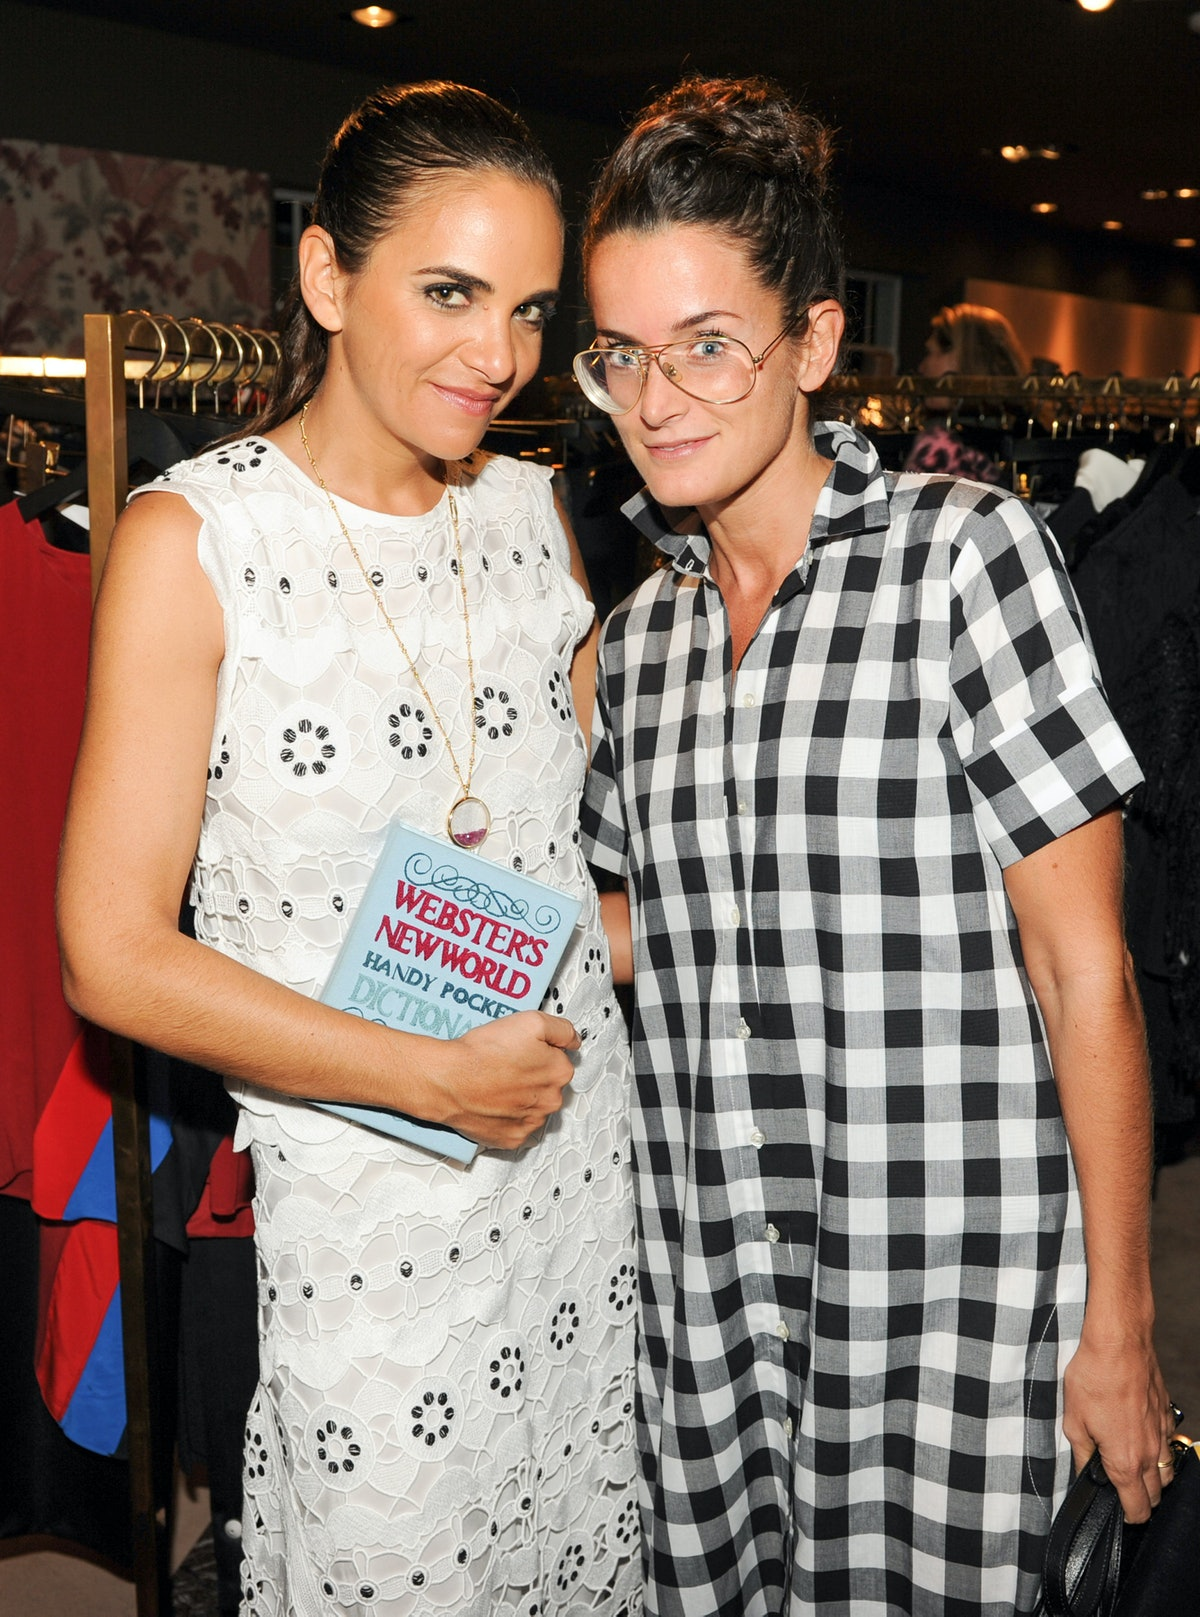 Laure Heriard Dubreil and Lucy Chadwick